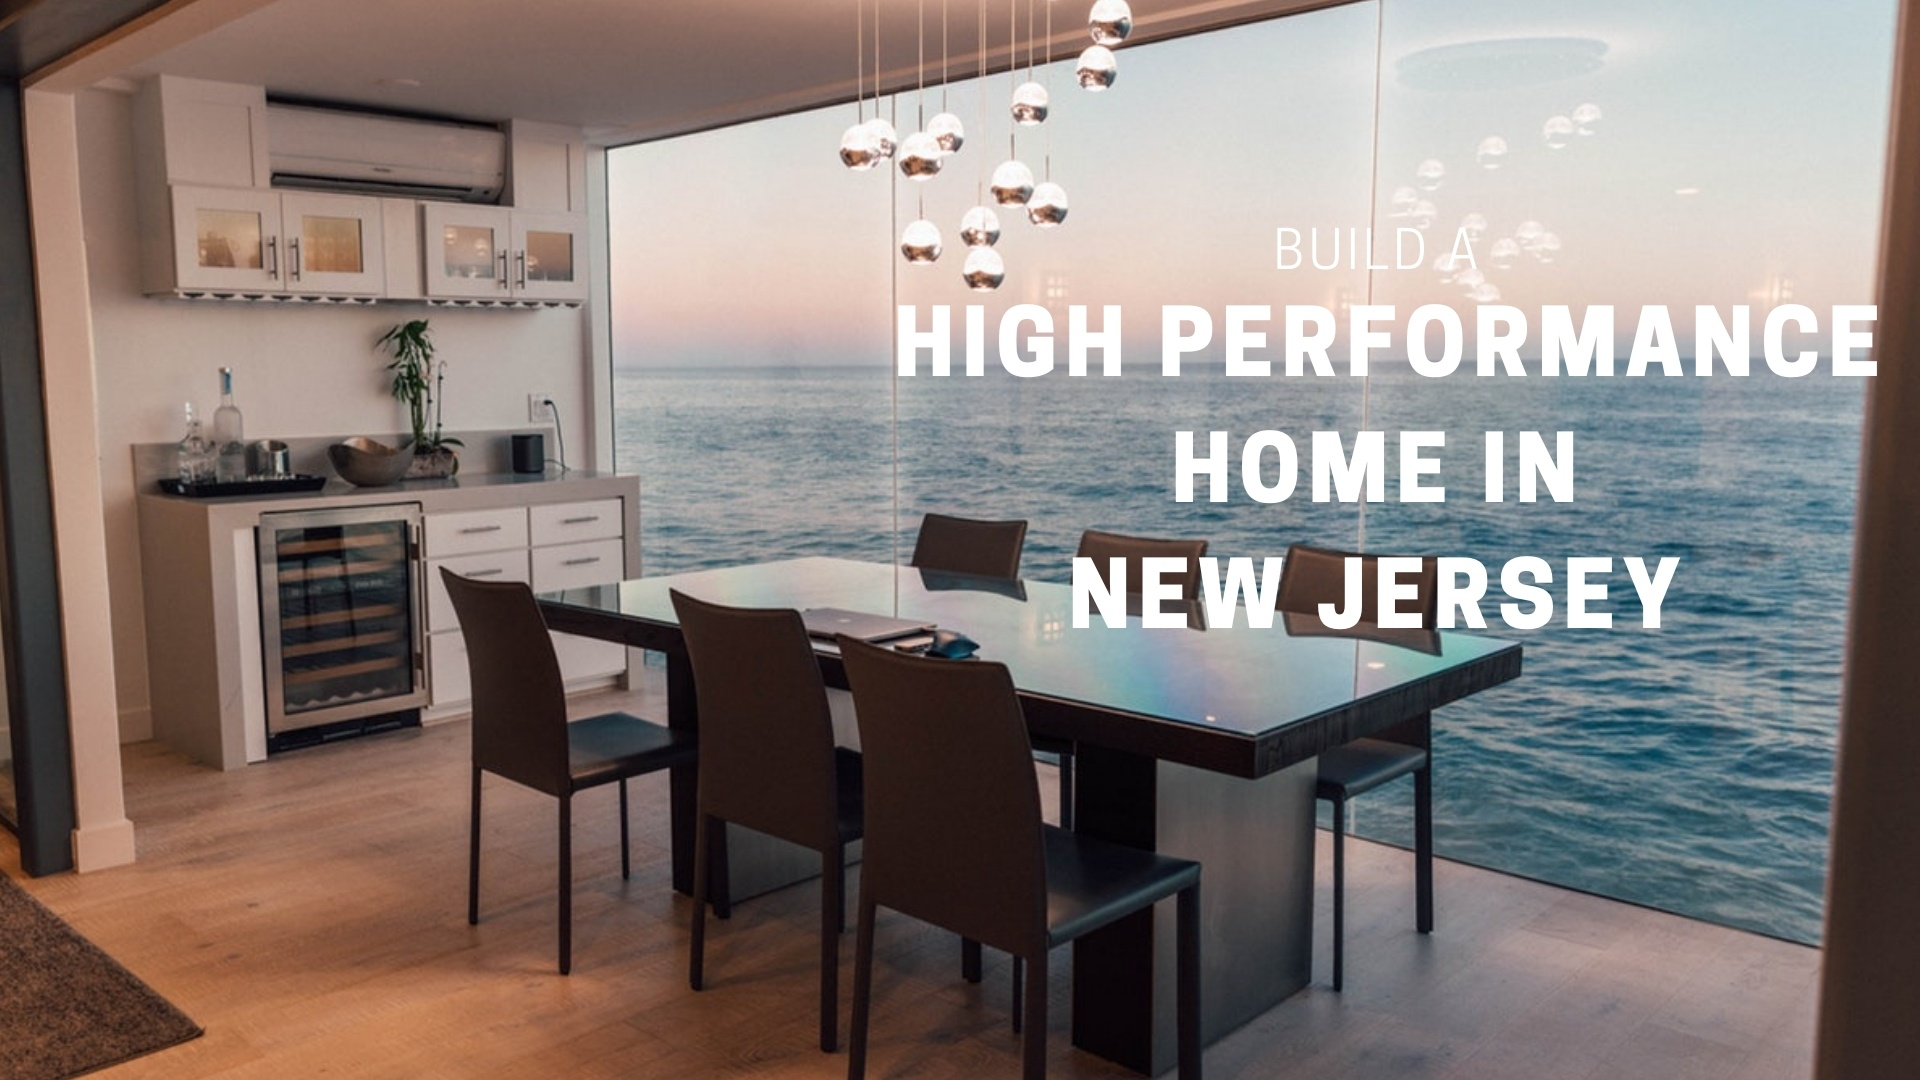 How to Build a High Performance Home in New Jersey